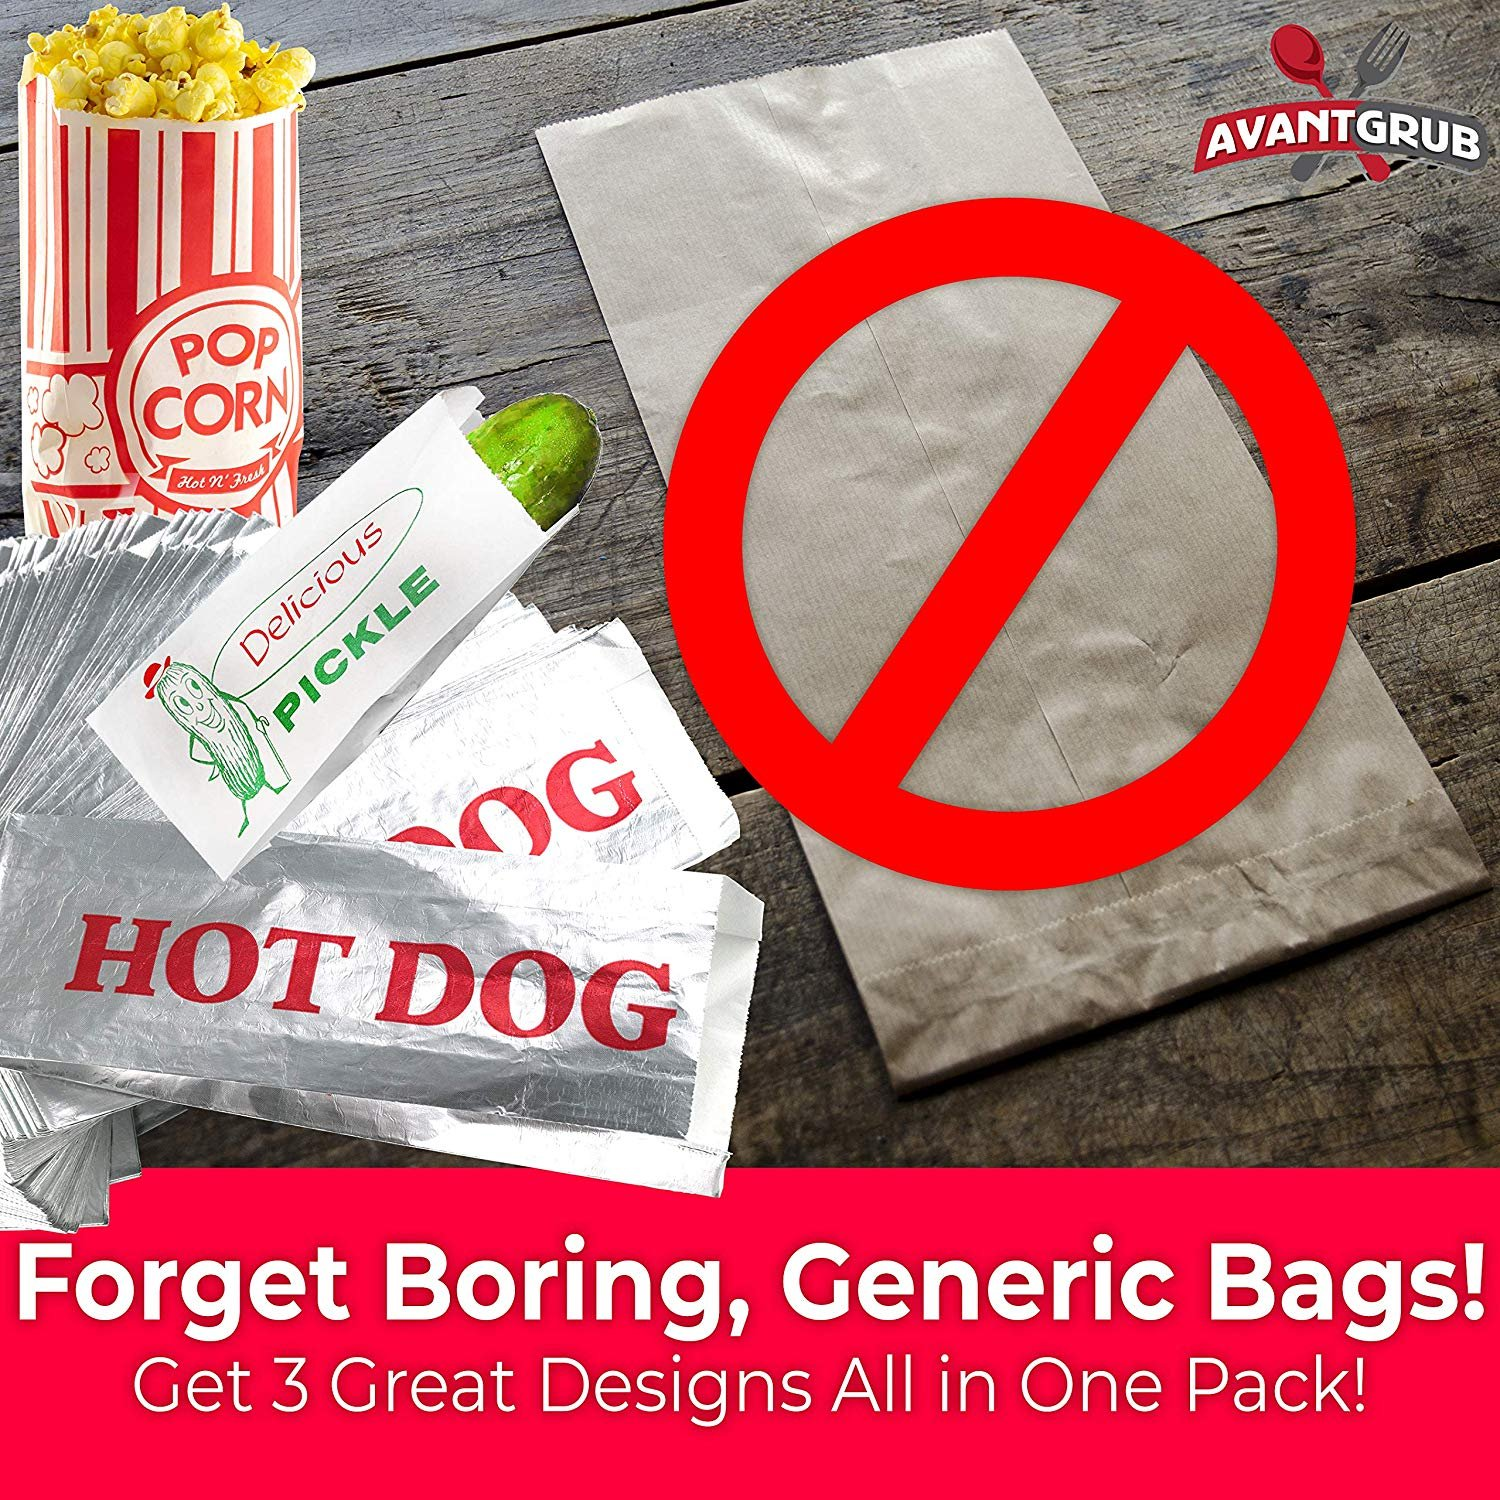 Turn Your Party into a Carnival with Paper Snack Sacks That Keep Pickles Contained and Fundraiser or Concession Stand Guests Mess-Free! Classic Vintage Design Dill Pickle Bag 100 Pack by Avant Grub